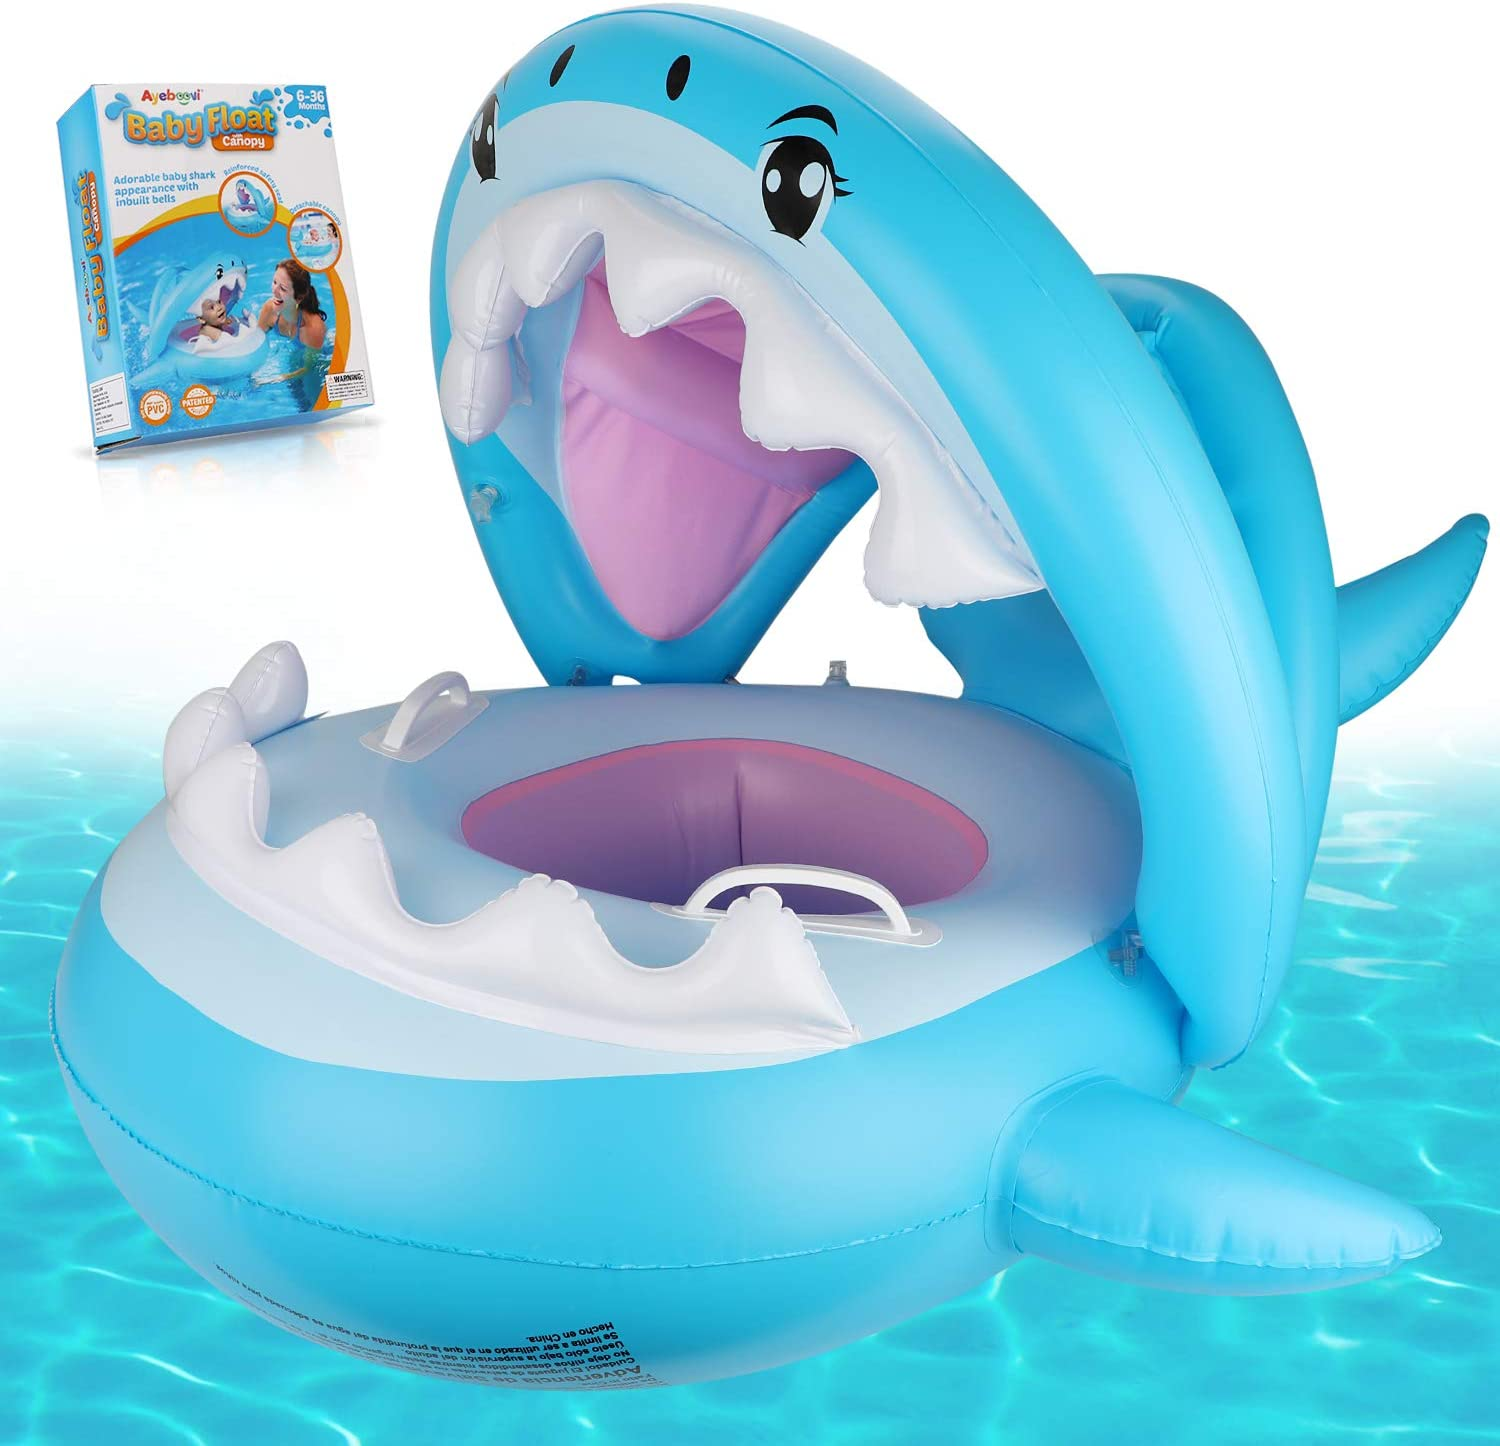 Ayeboovi Best Baby Pool Float with Canopy